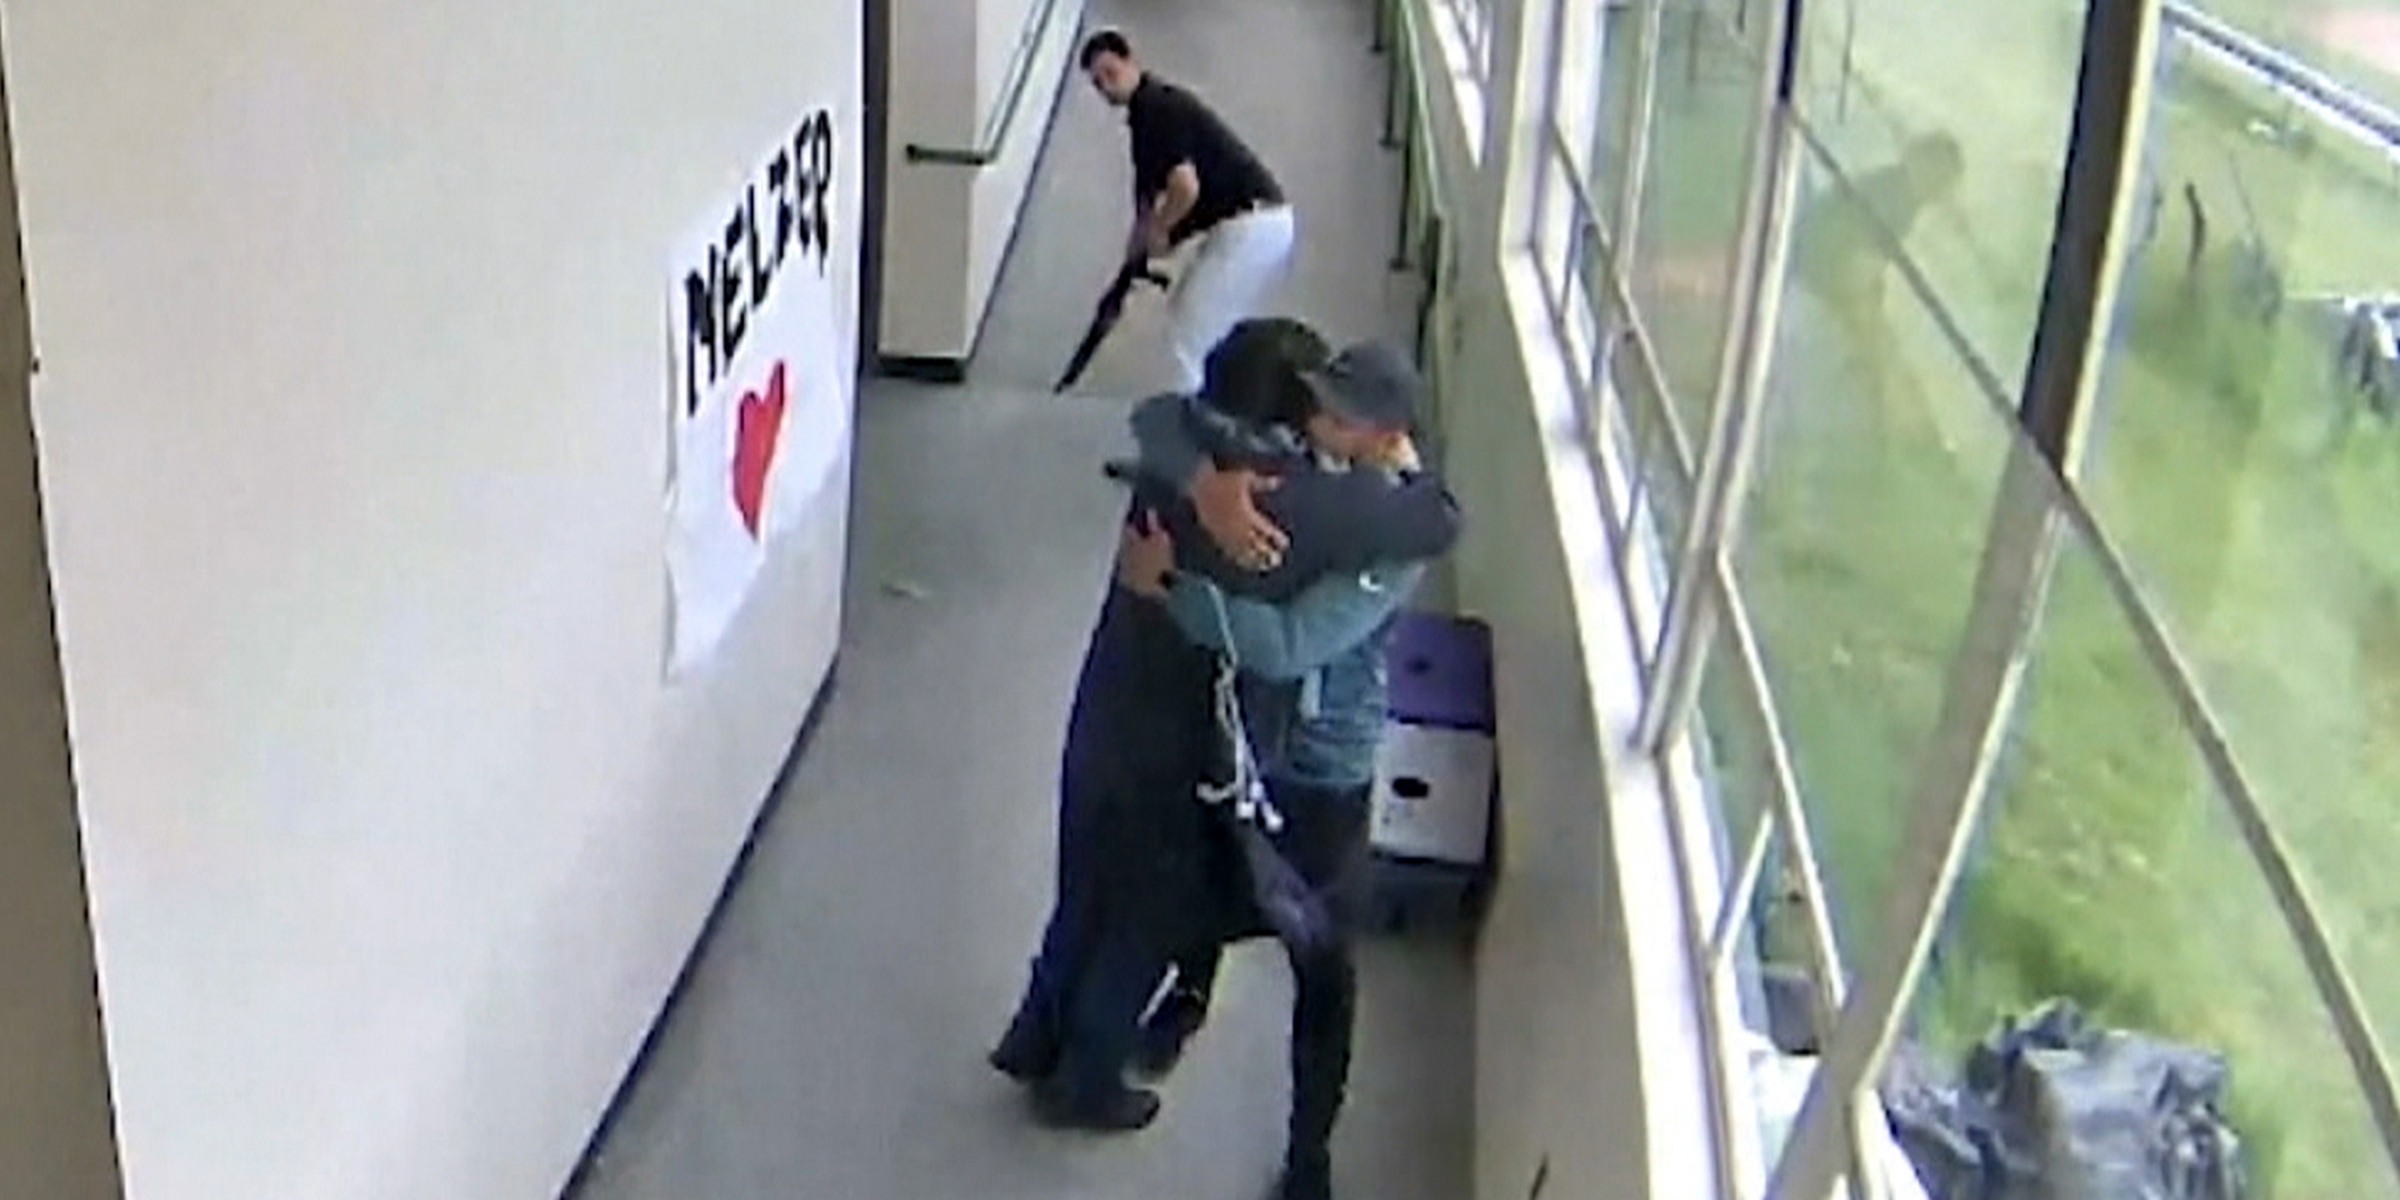 New video shows the moment Oregon coach disarmed and hugged gun-wielding student